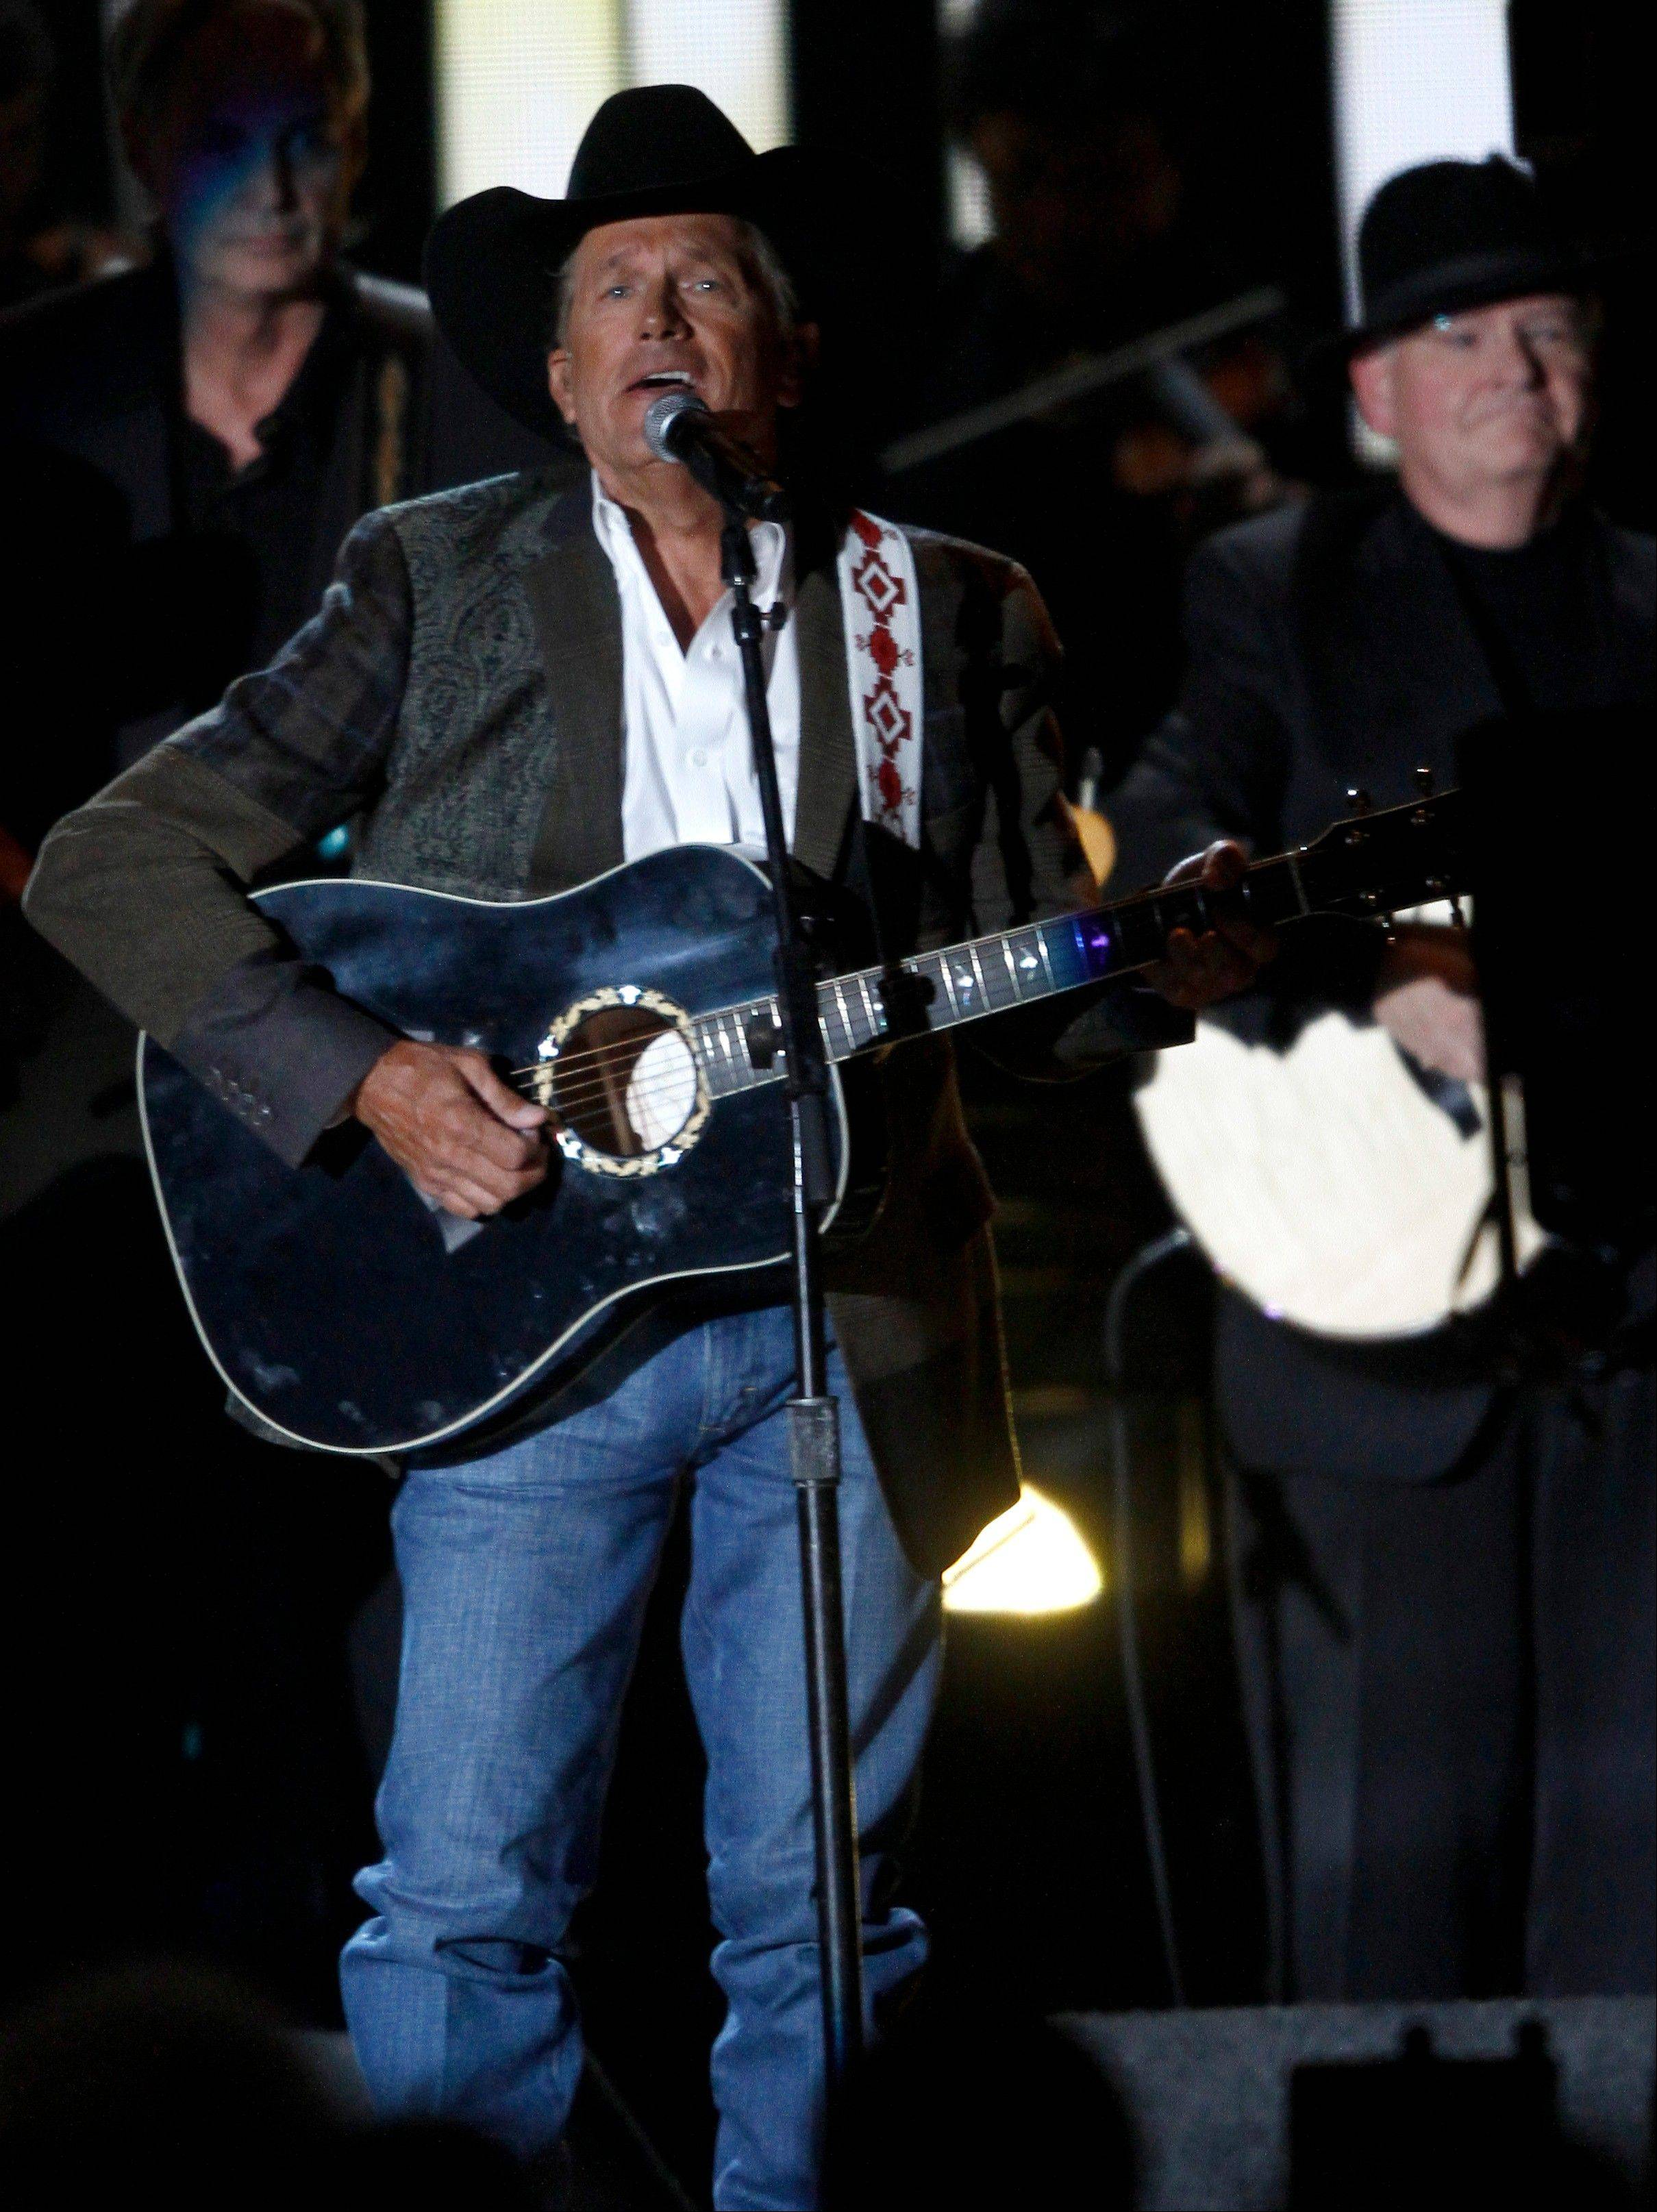 George Strait was named Entertainer of the Year at the 47th annual CMA Awards Wednesday night in Nashville.